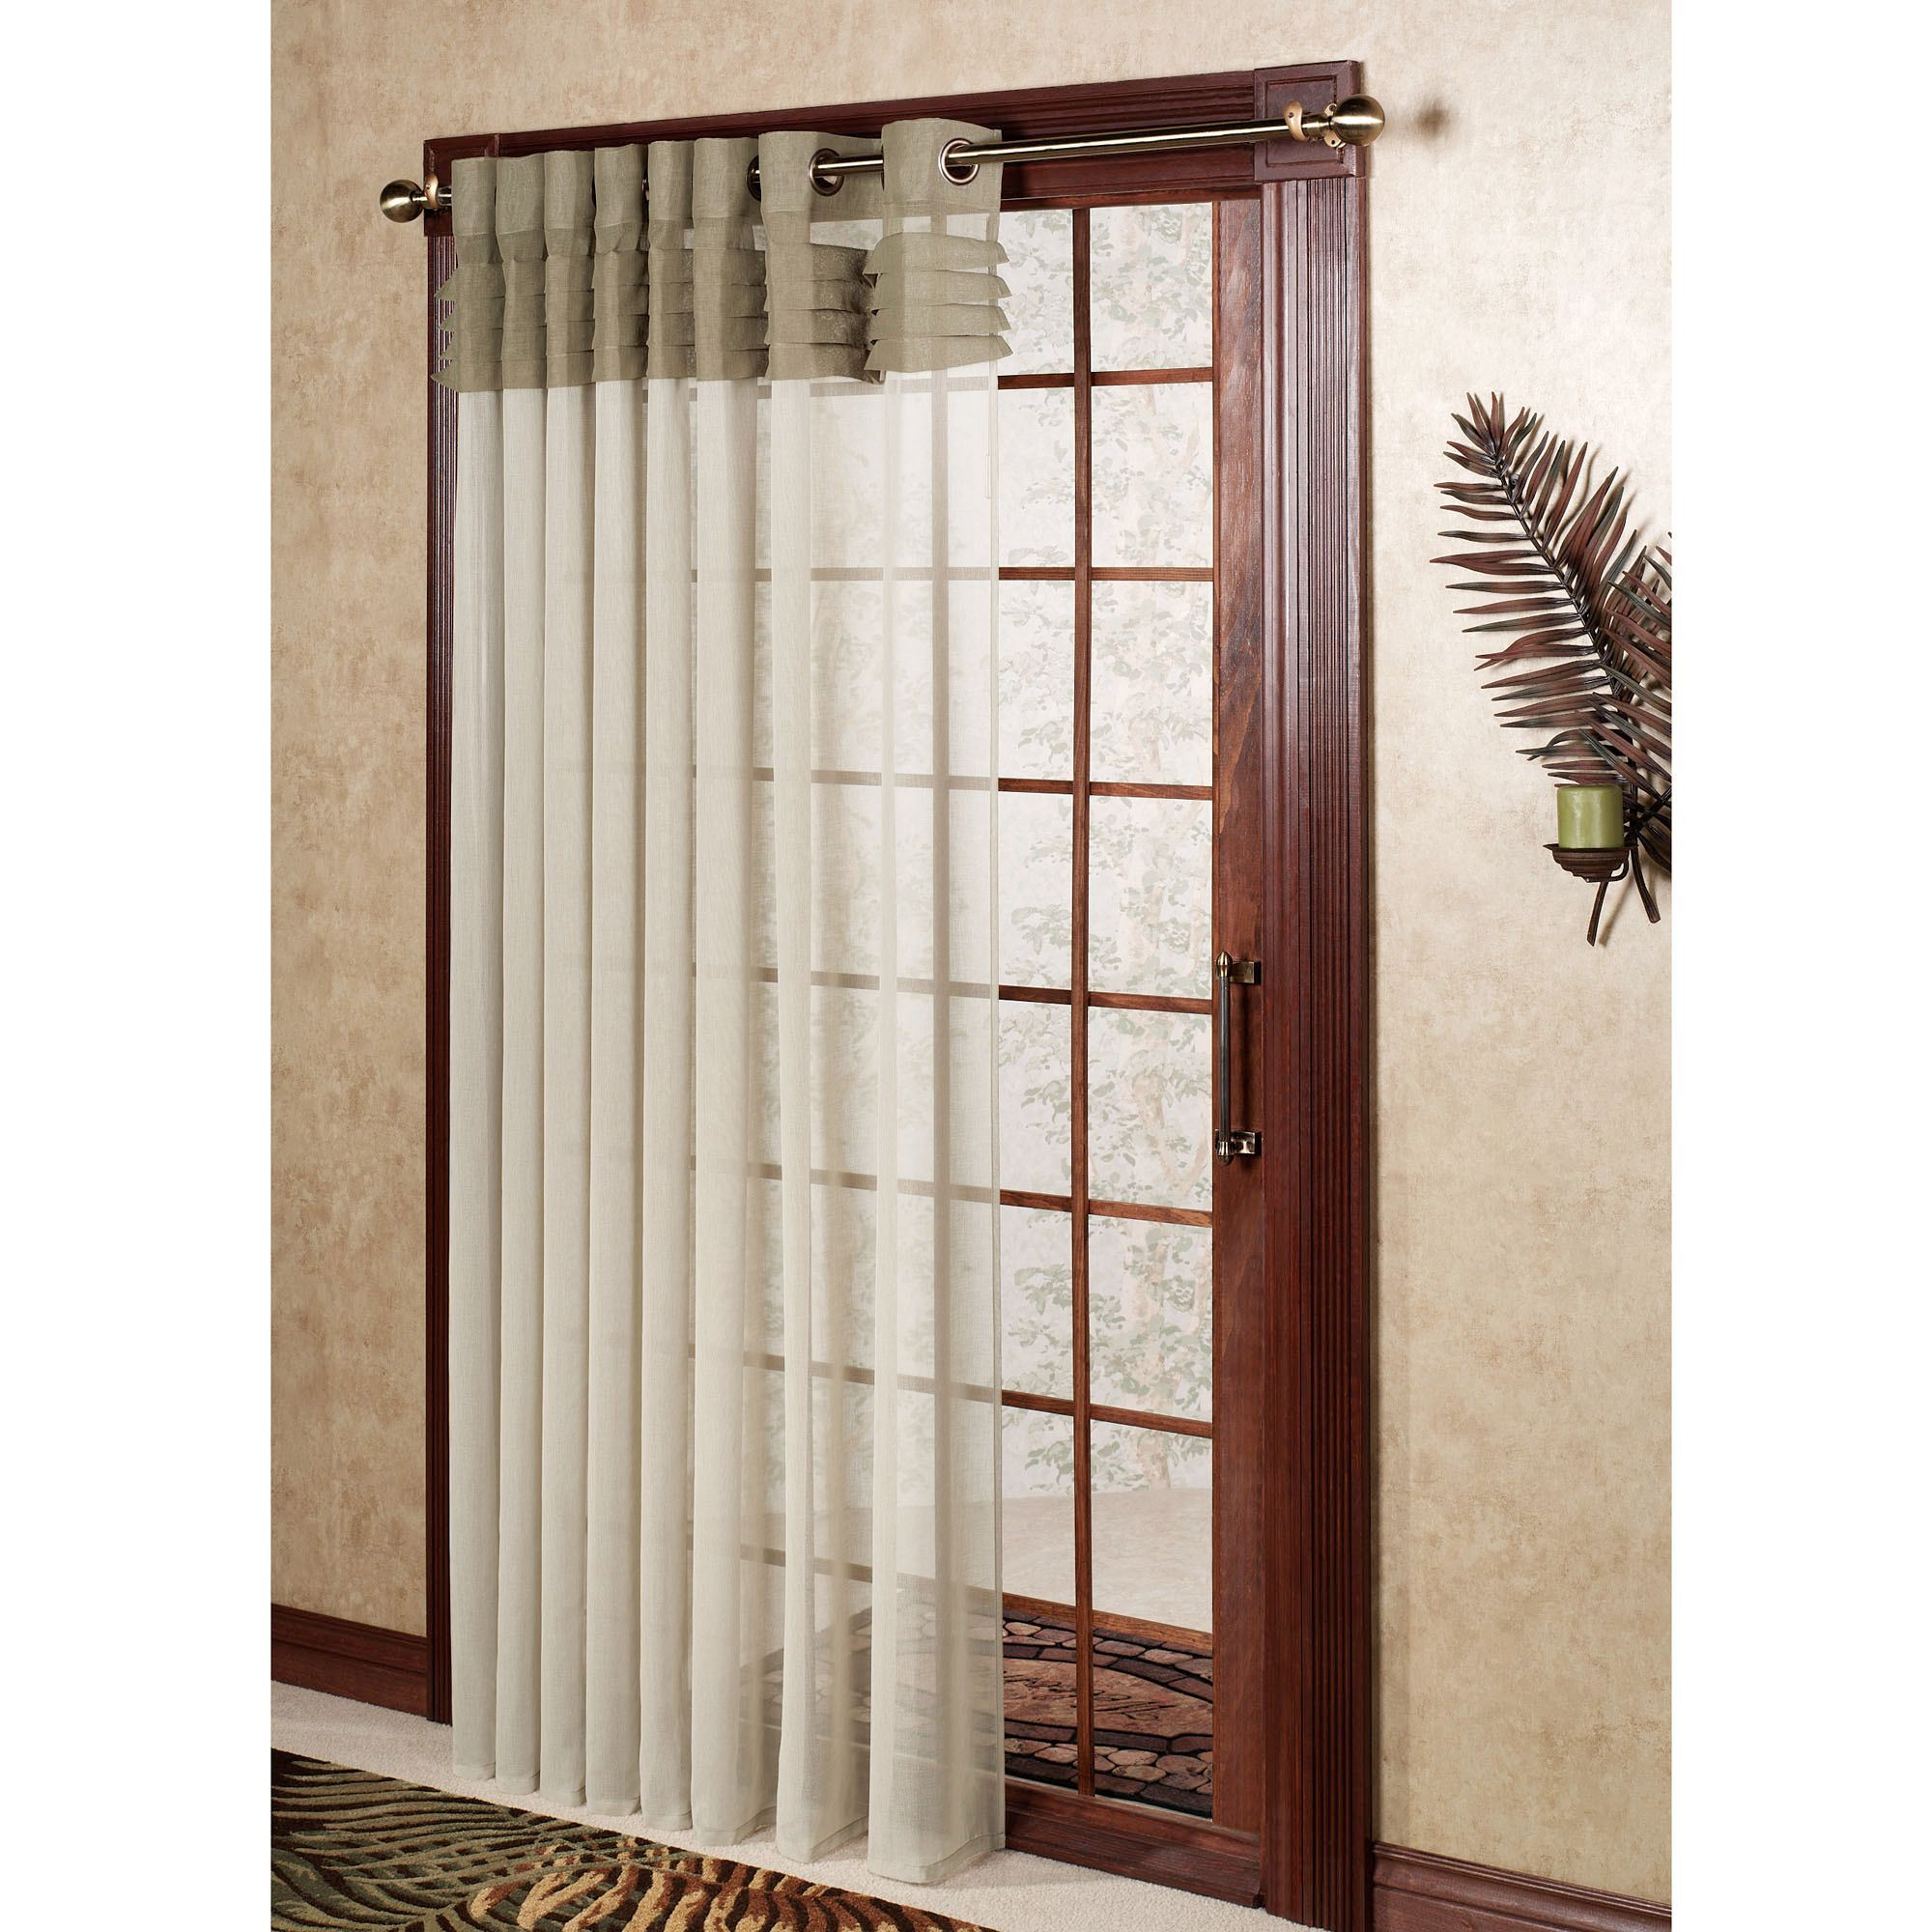 luxury door panels cheap gallery home inspiration most on small remodel curtains patio stylish curtain decor with